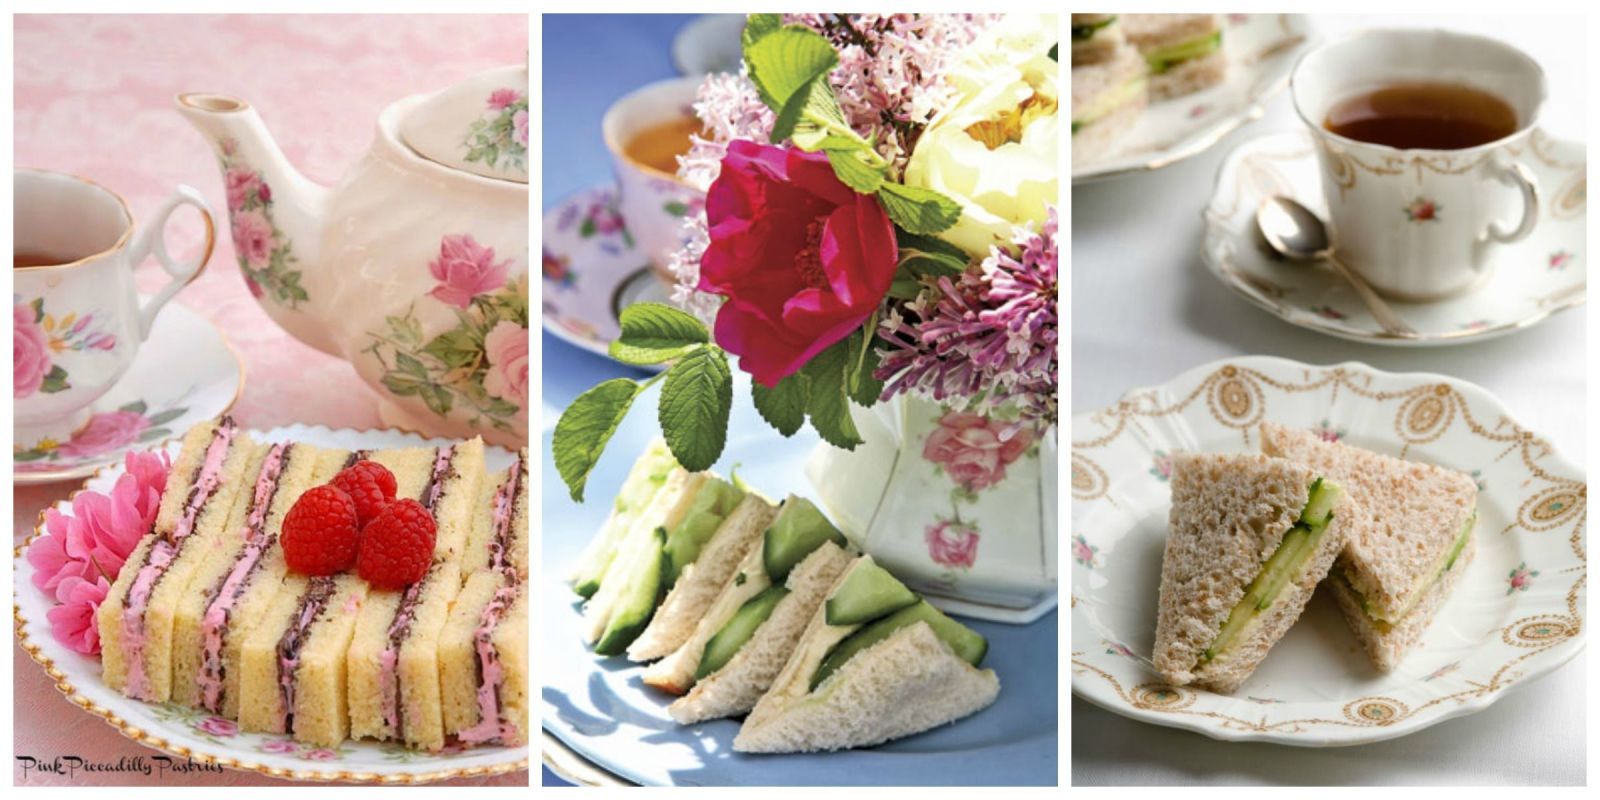 High tea menus and recipes - Tea Party Sandwich Recipes Finger Sandwiches Perfect For Afternoon Tea